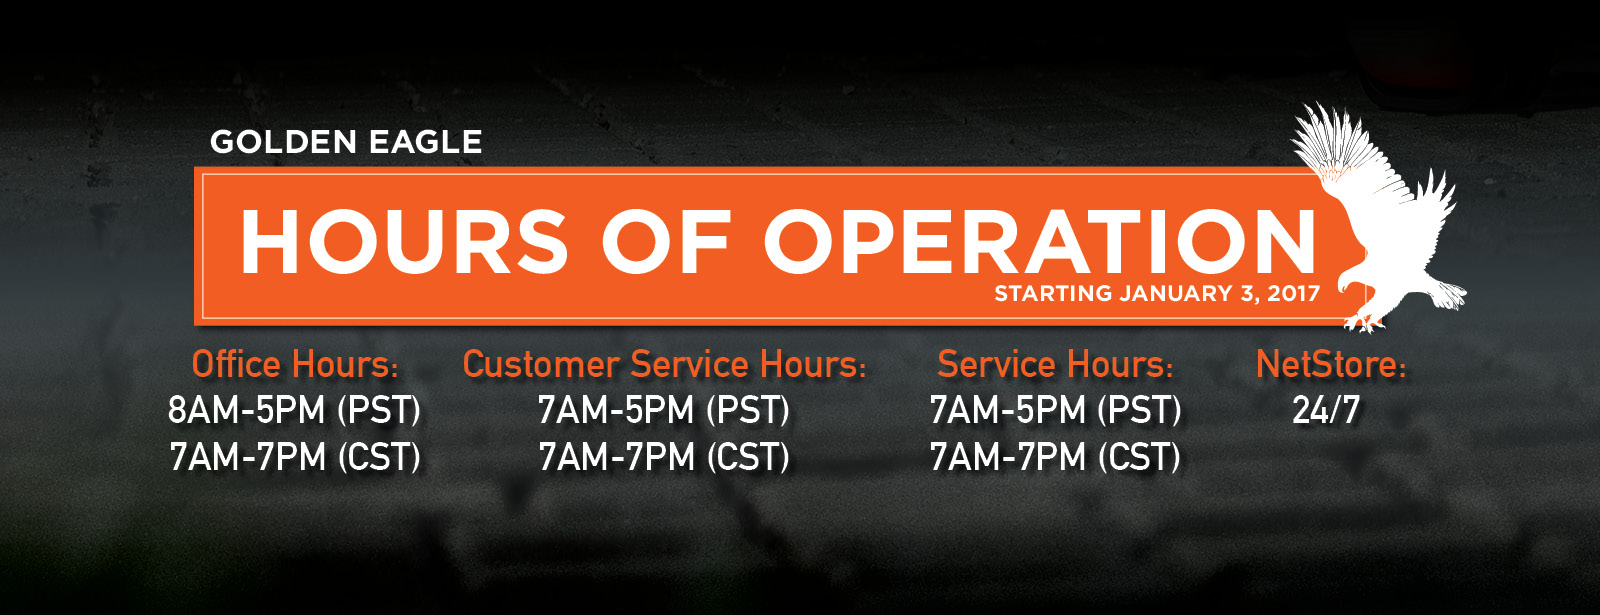 Hours of opperation